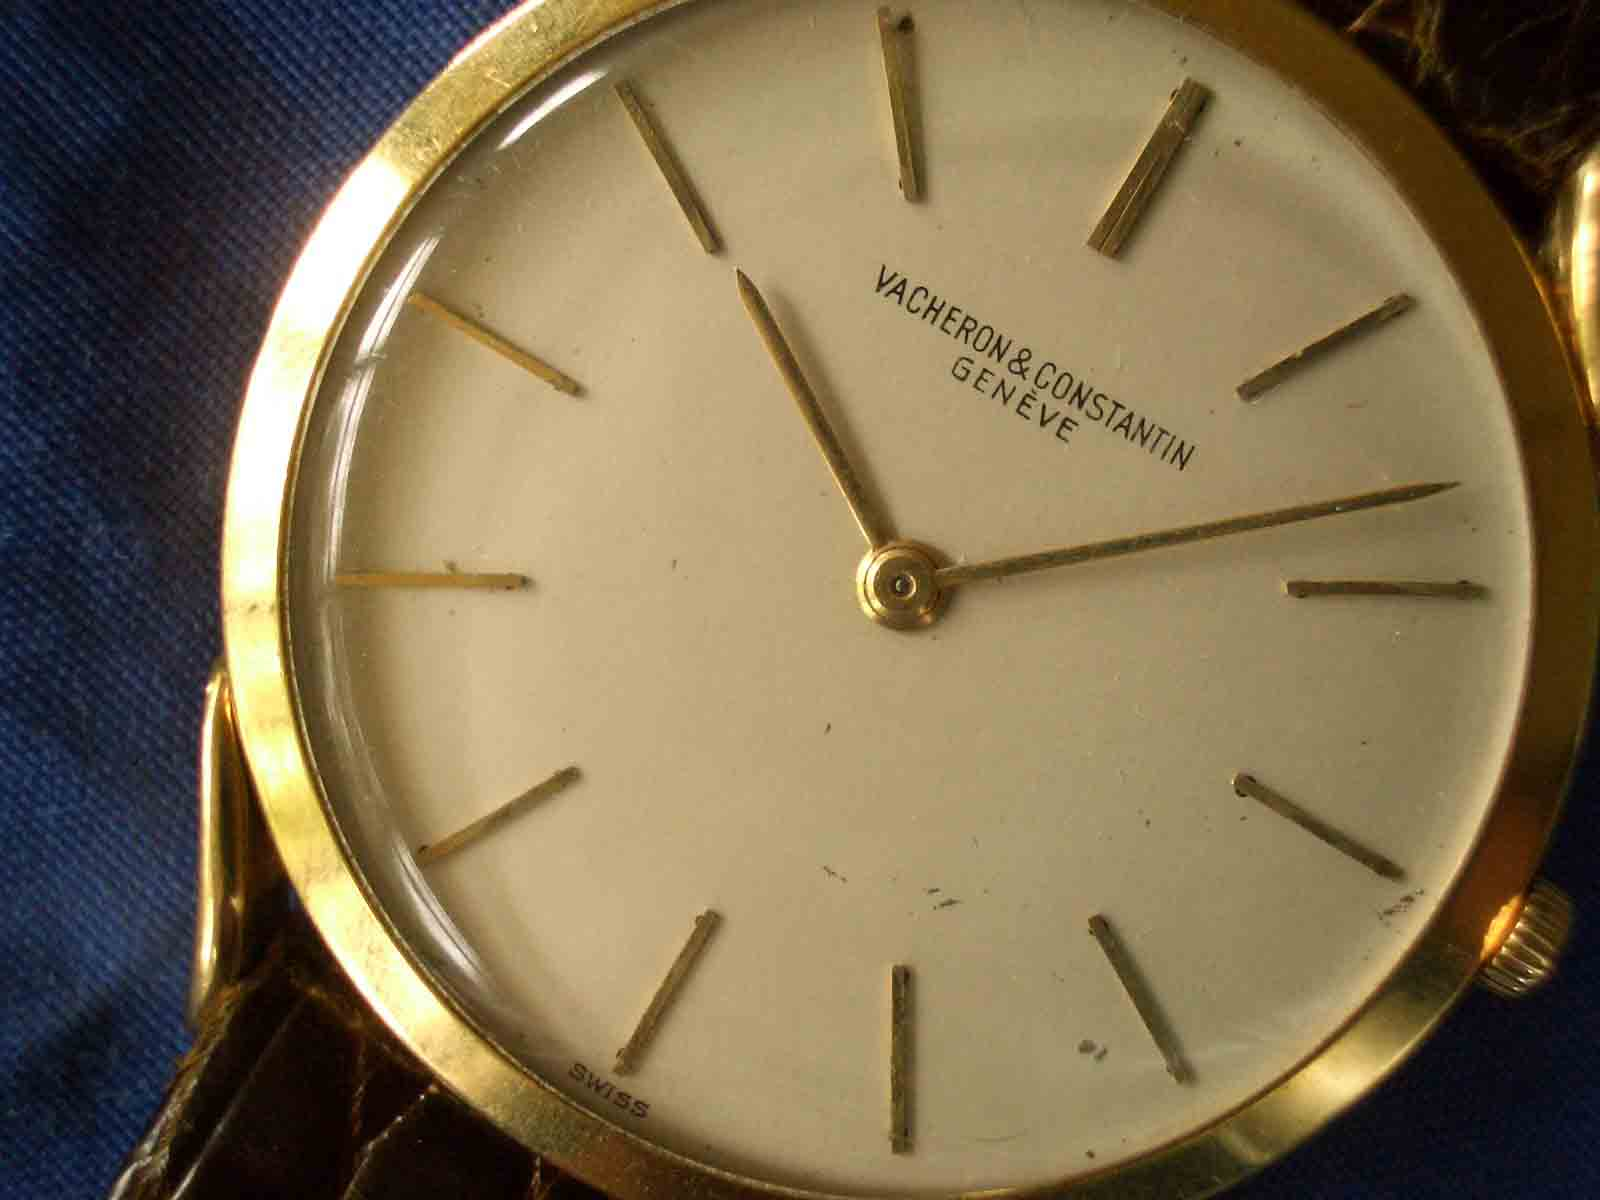 Vacheron Flat Close